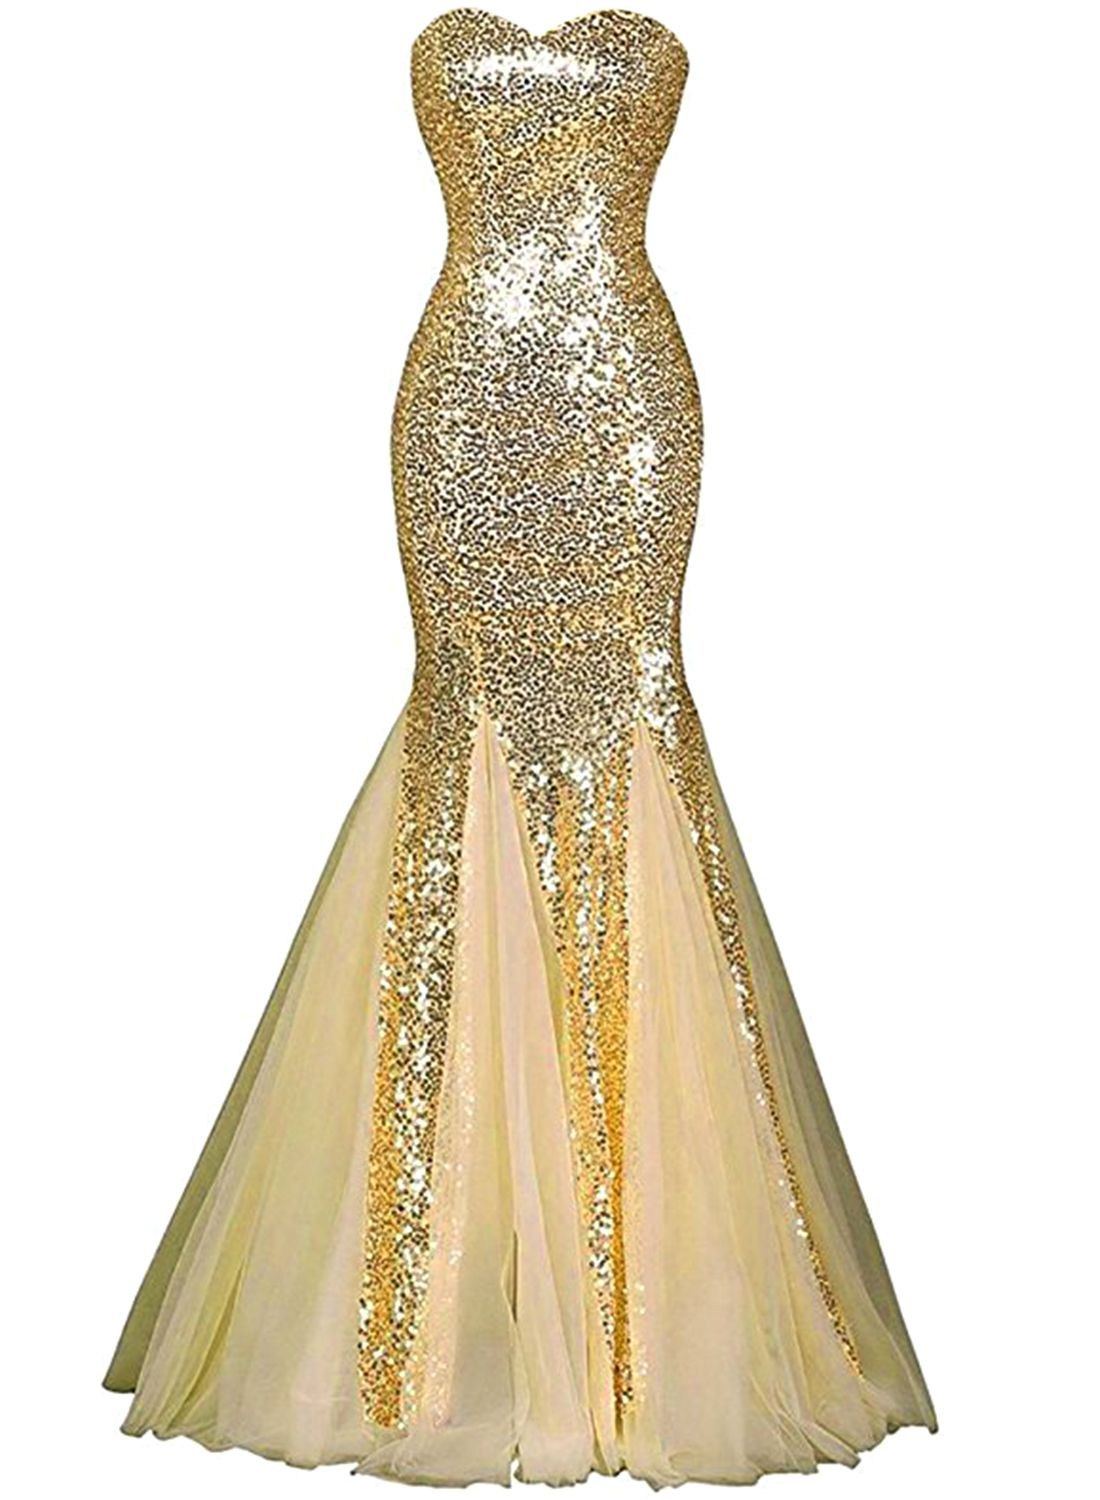 2a438681b76 Womens Glamour Sweetheart Sequin Mermaid Long Mermaid Prom Dress in ...